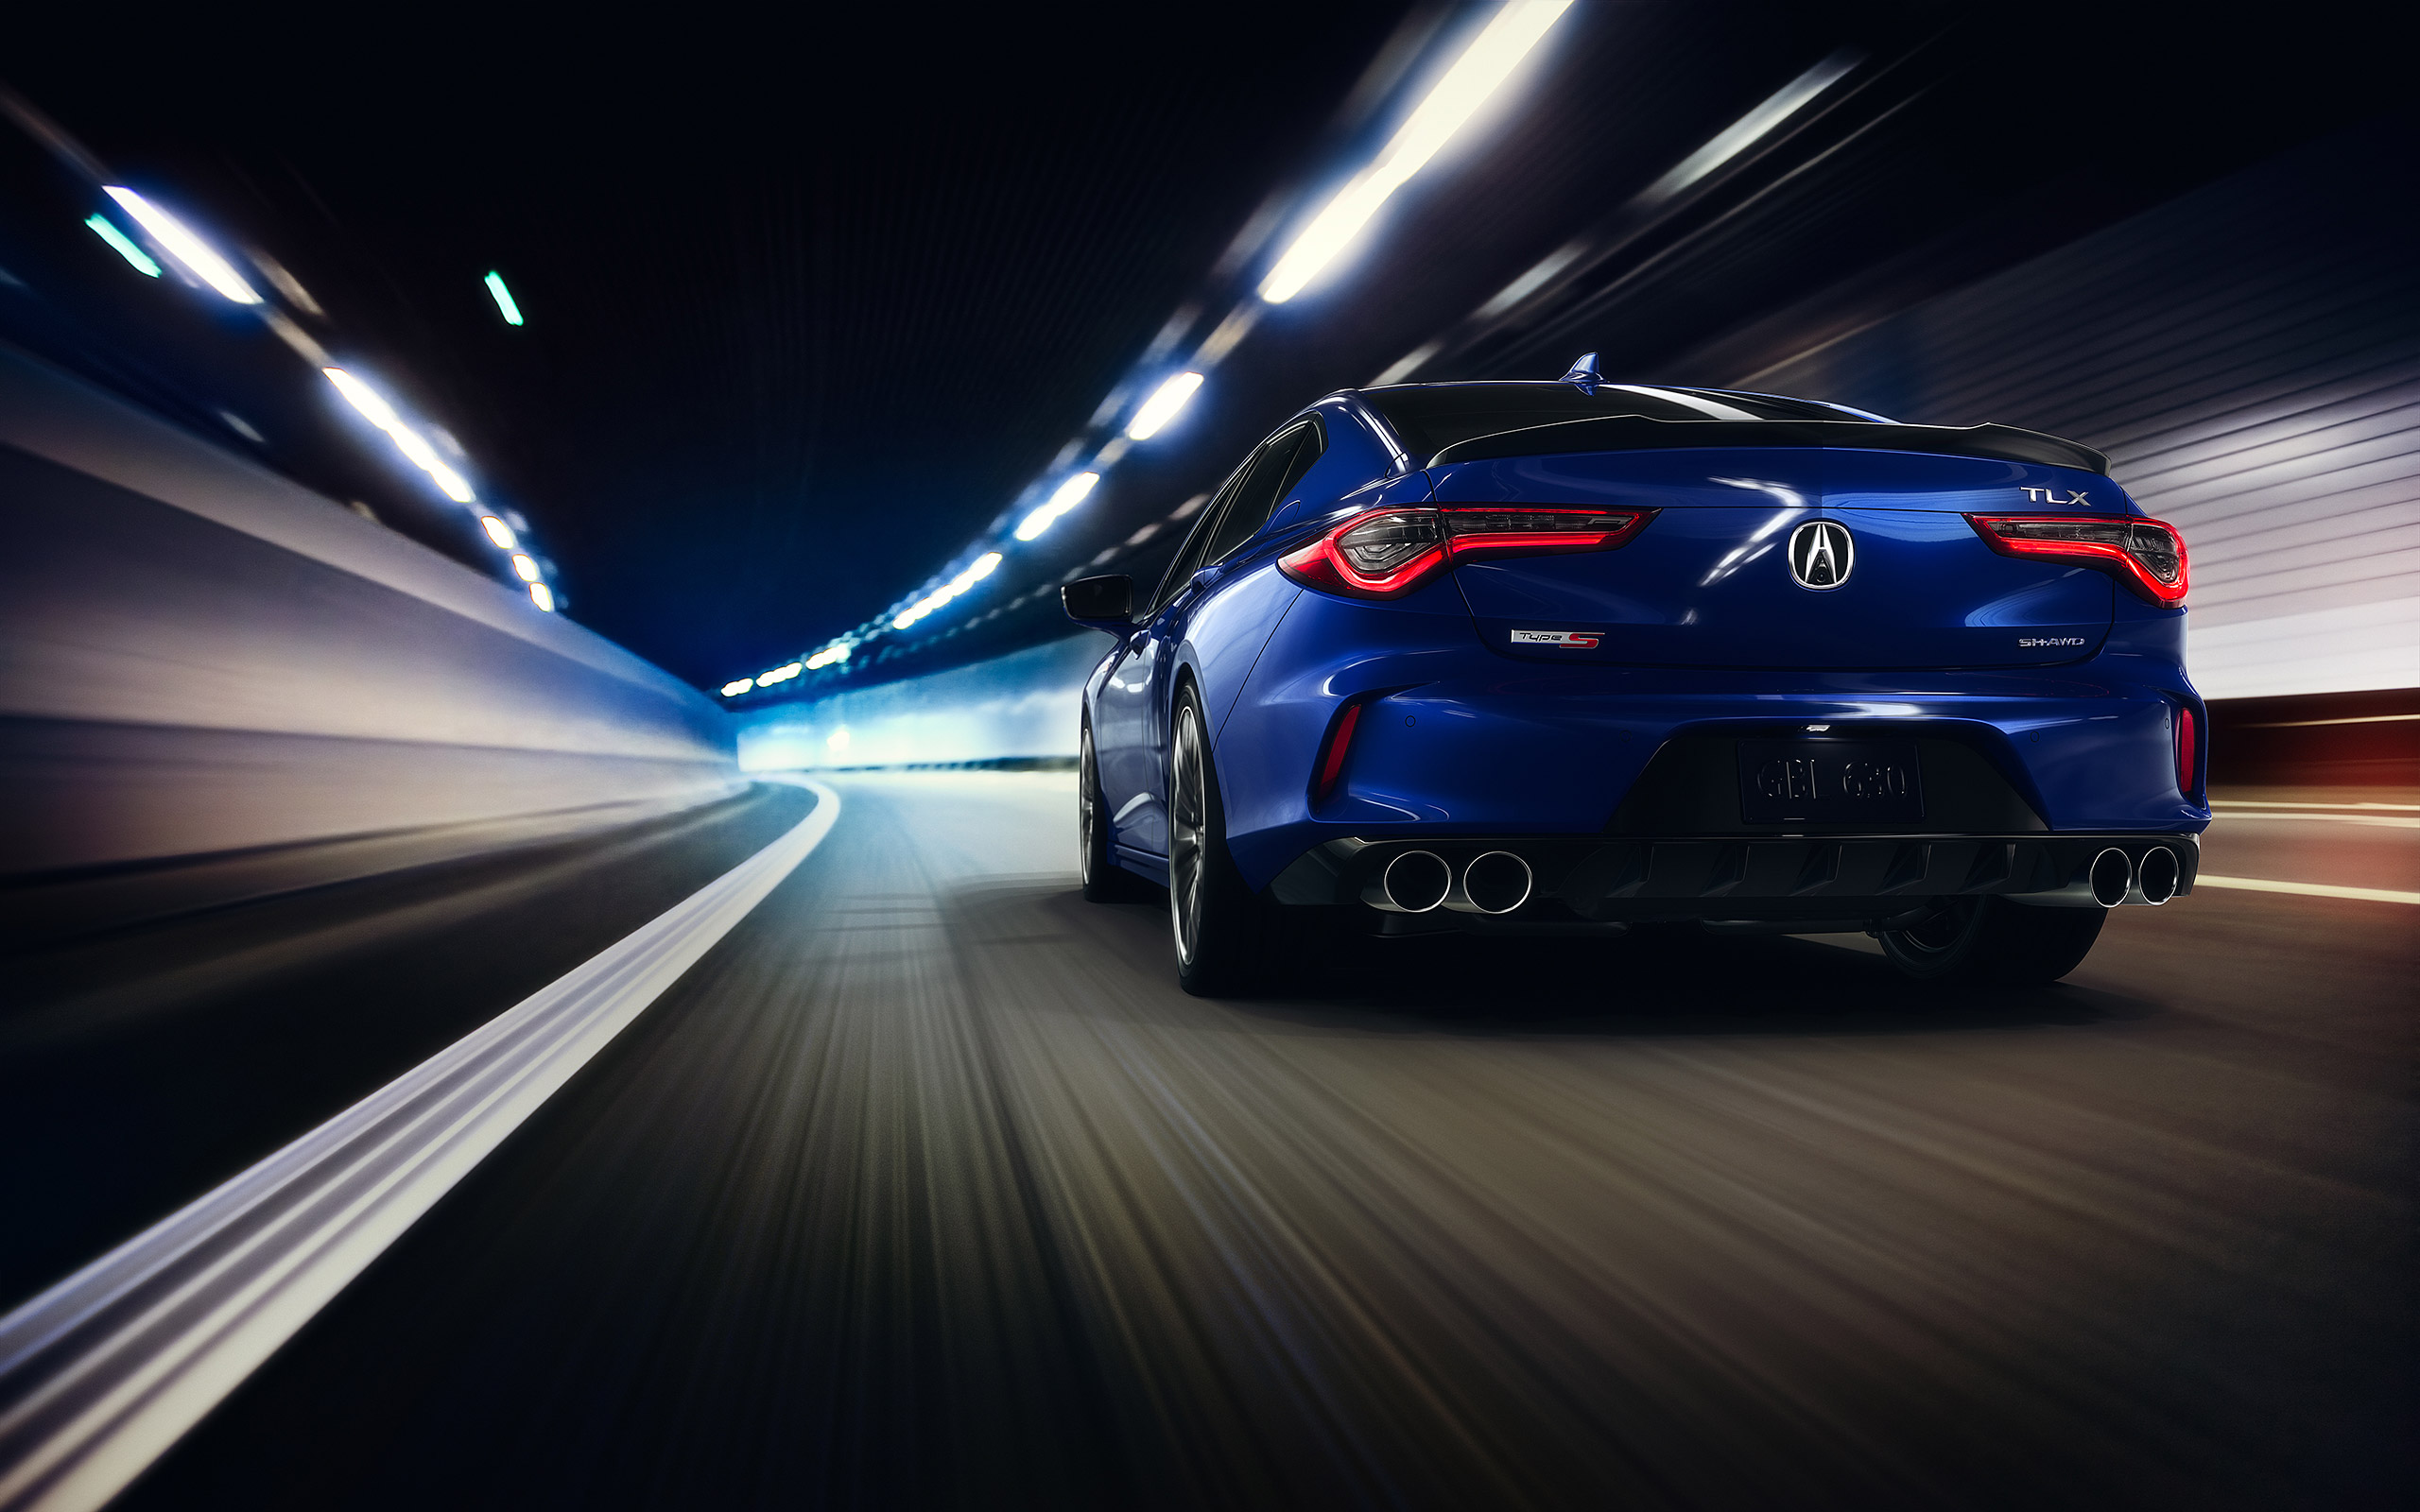 Download wallpapers 2021 Acura TLX Type S rear view exterior 2560x1600